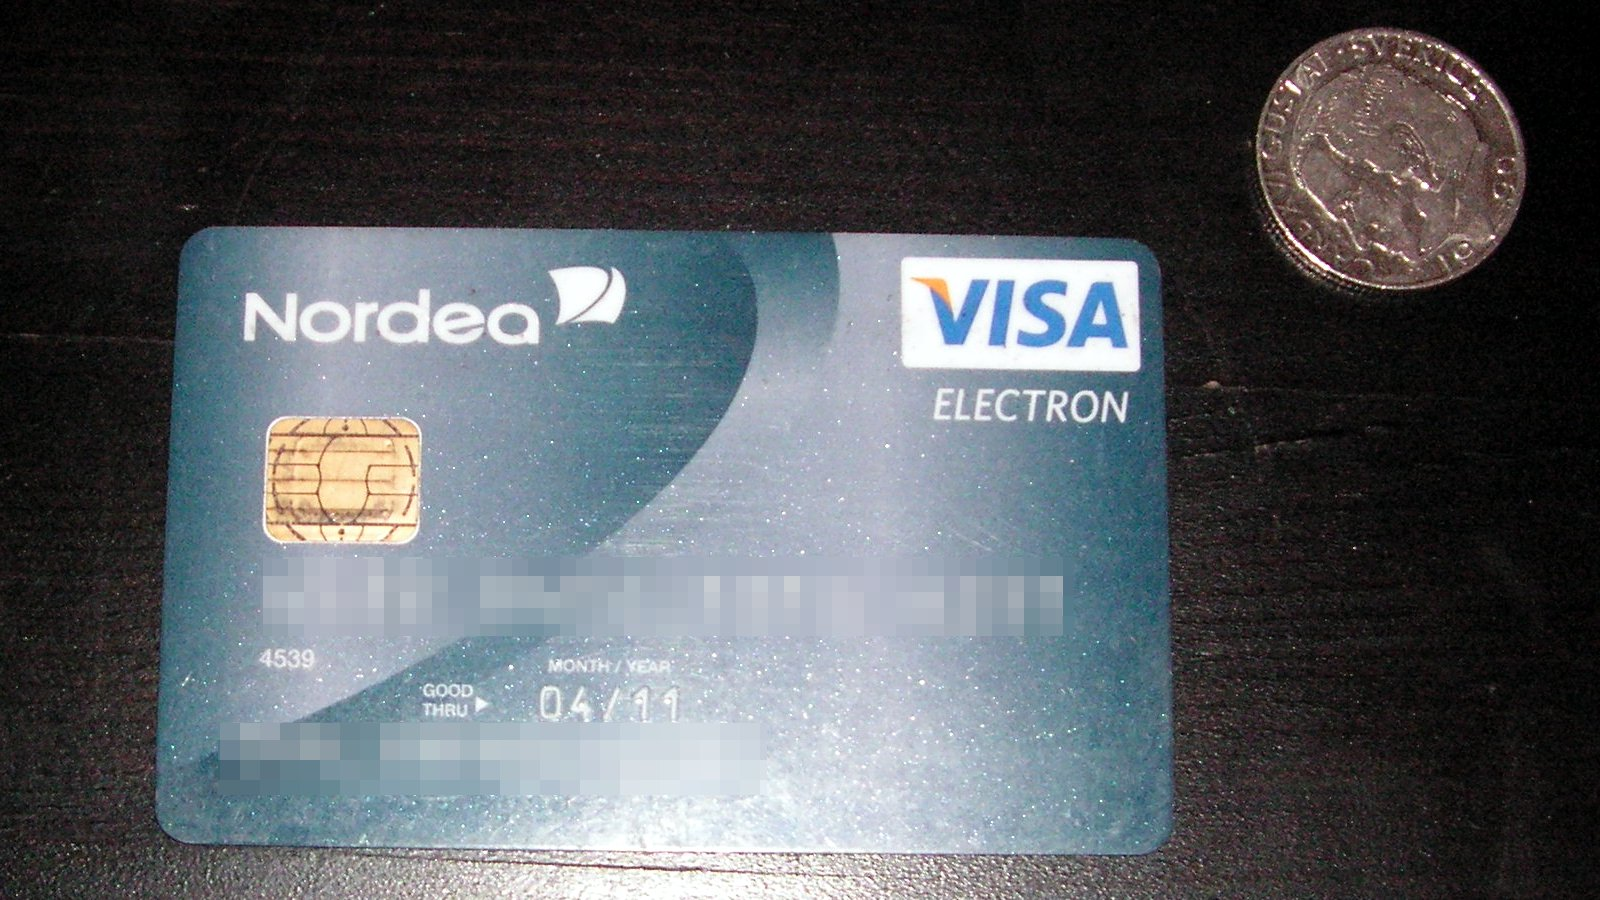 what is a visa electron